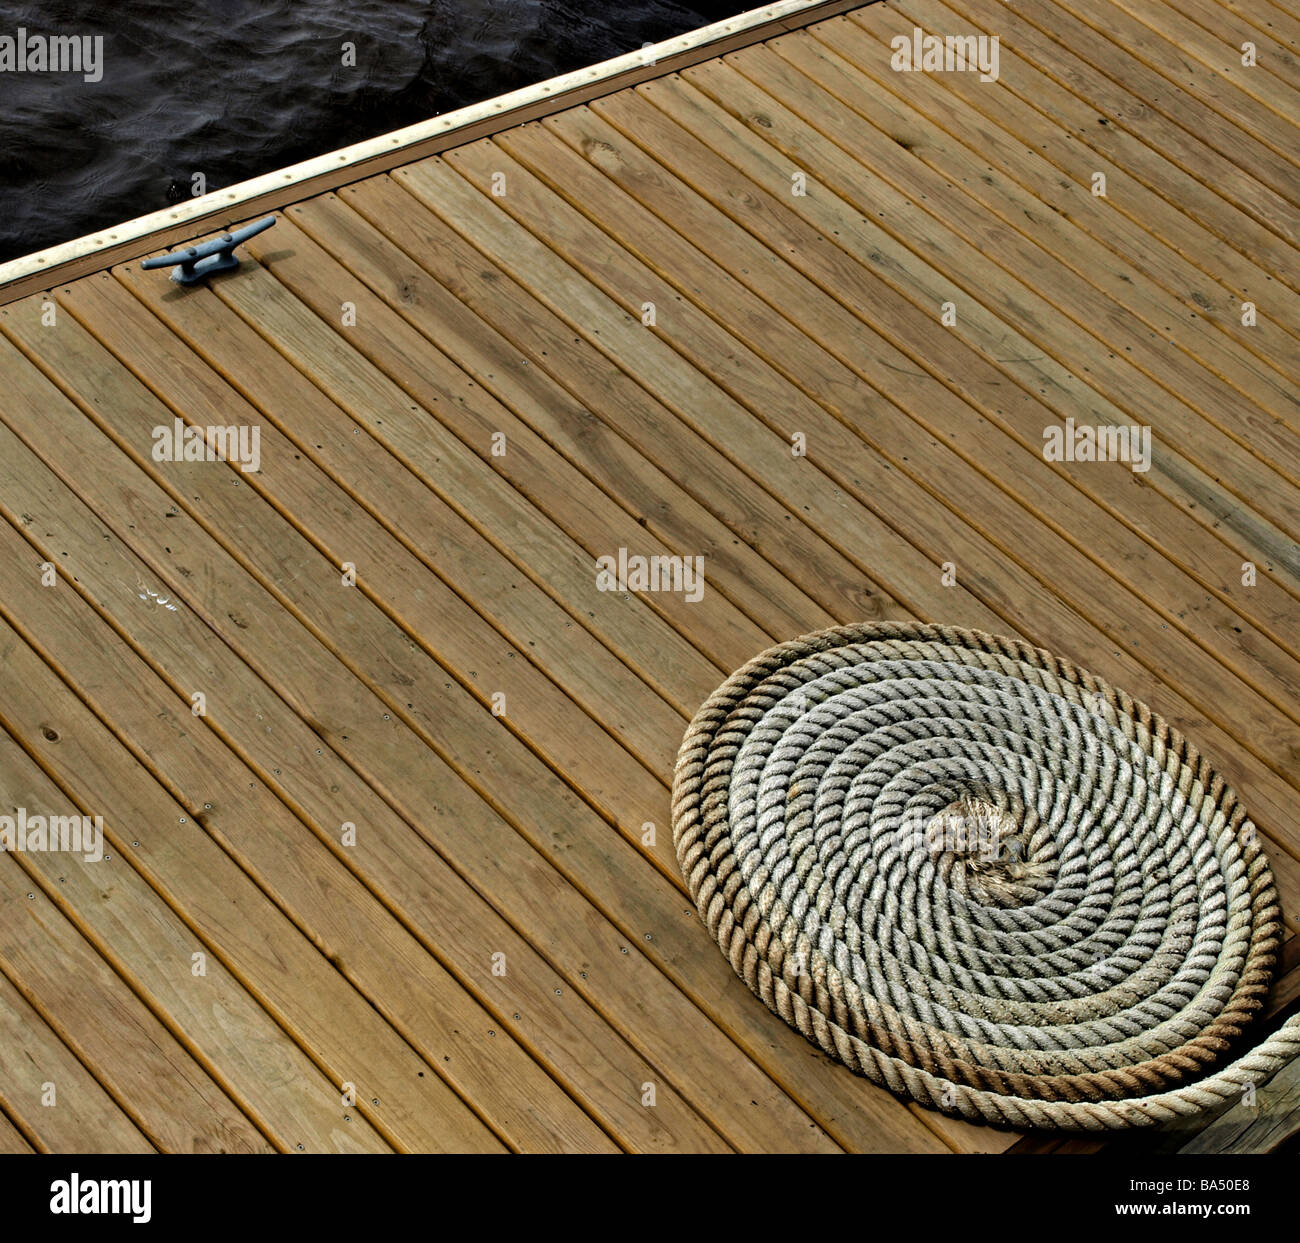 wooden deck on river with coiled rope and tie-up hook, deck is multiple boards and geometric against circle of the - Stock Image